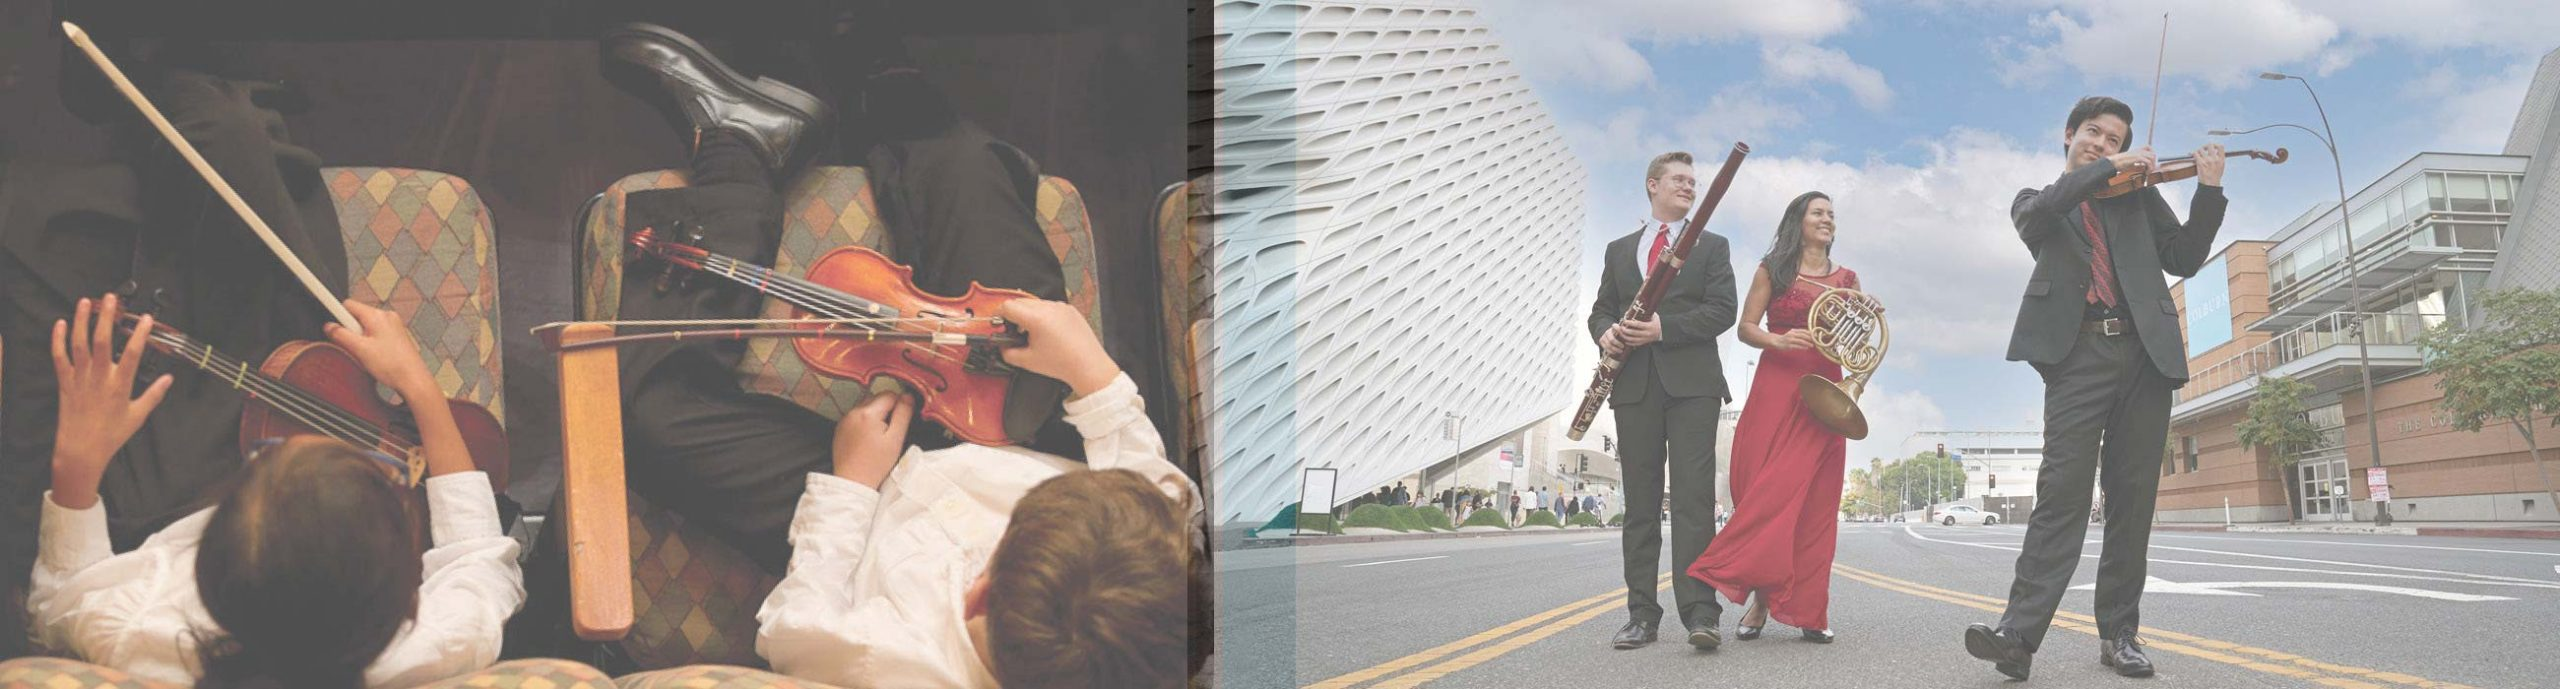 Photo on left of two students sitting in seats holding violins in their laps from above, photo on left of bassoonist, french horn player, and violinist in formal dress standing in street outside Colburn campus